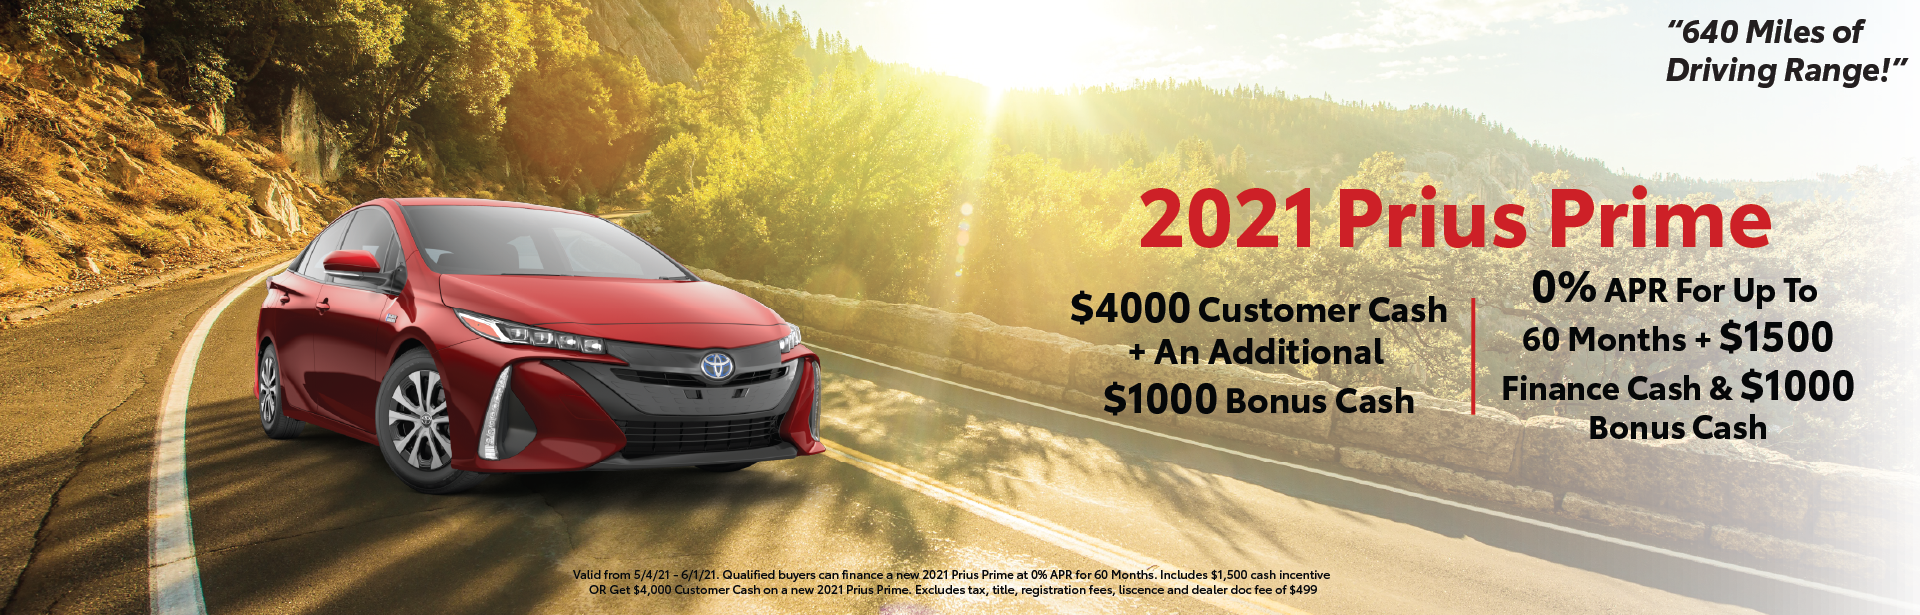 May 2021 – Prius Prime Cash Offers – Lynch Homepage